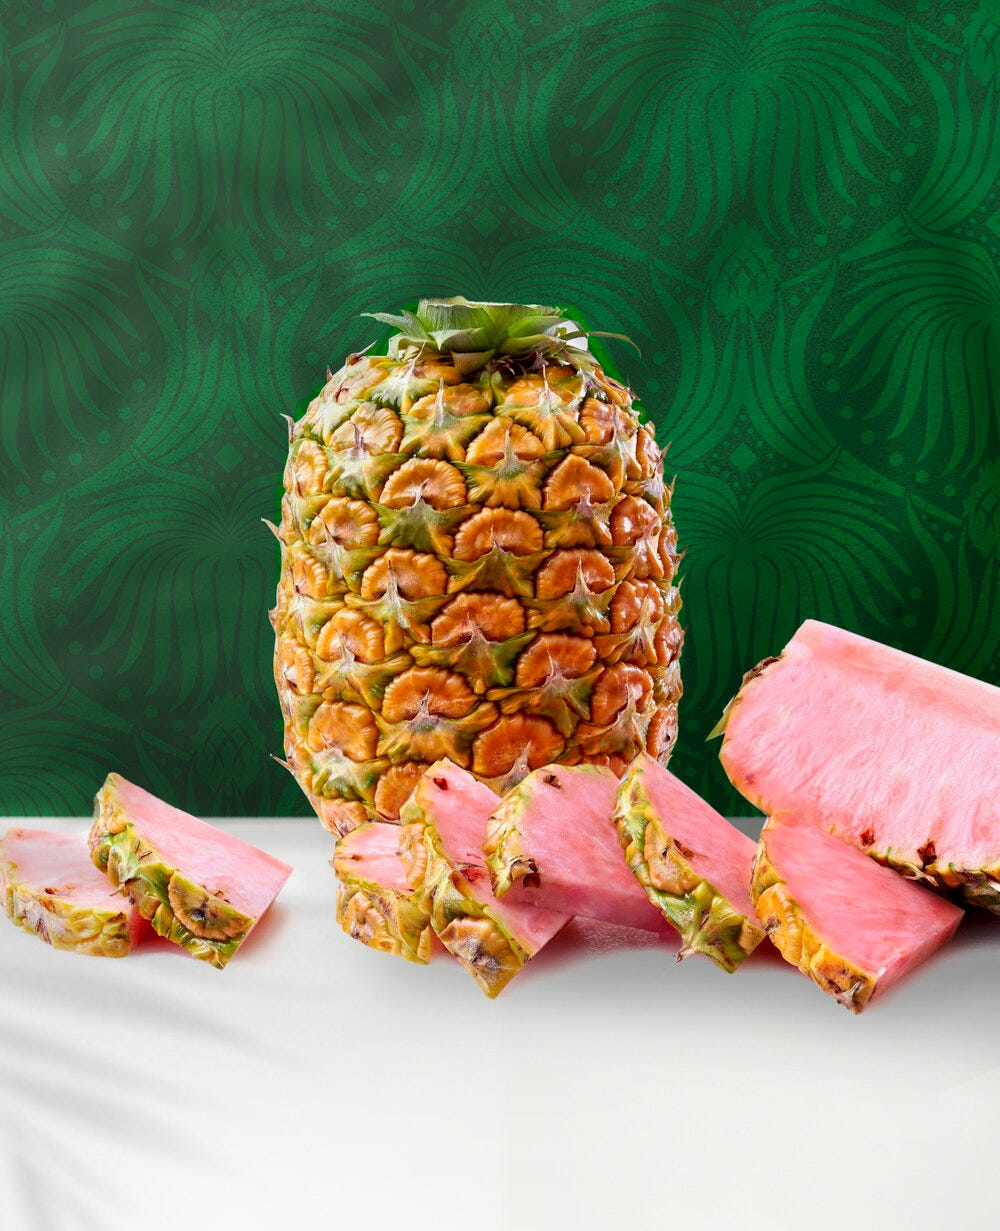 A pineapple sitting upright, surrounded by sliced pieces of pink pineapple.